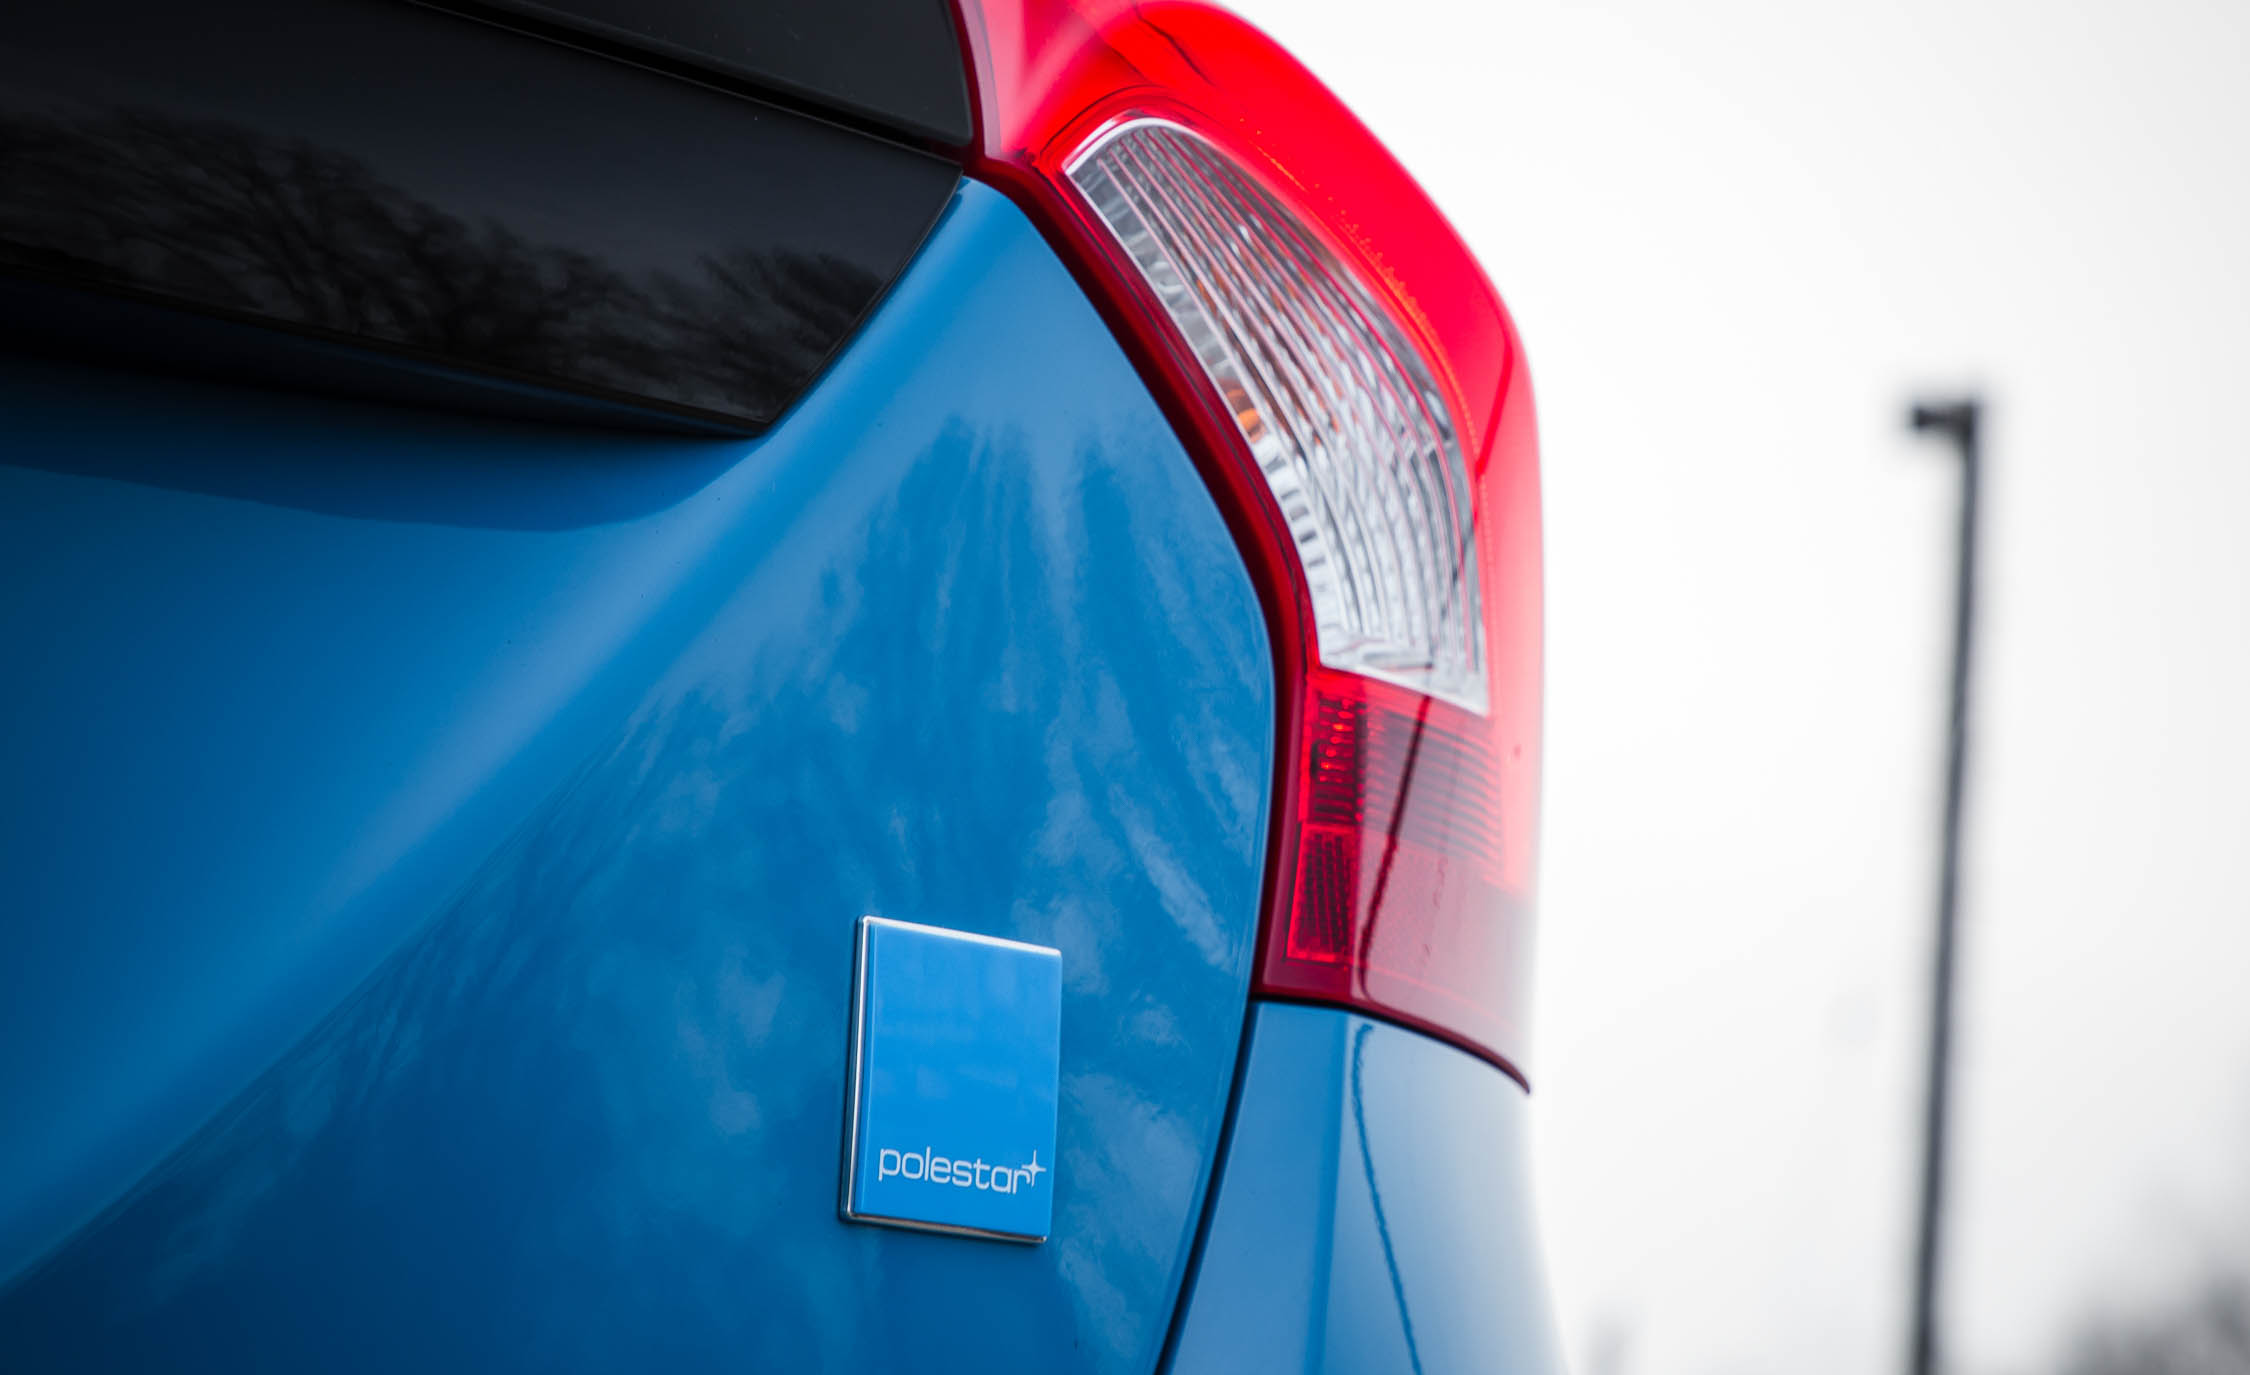 2017 Volvo V60 Polestar Exterior View Rear Emblem (Photo 12 of 53)